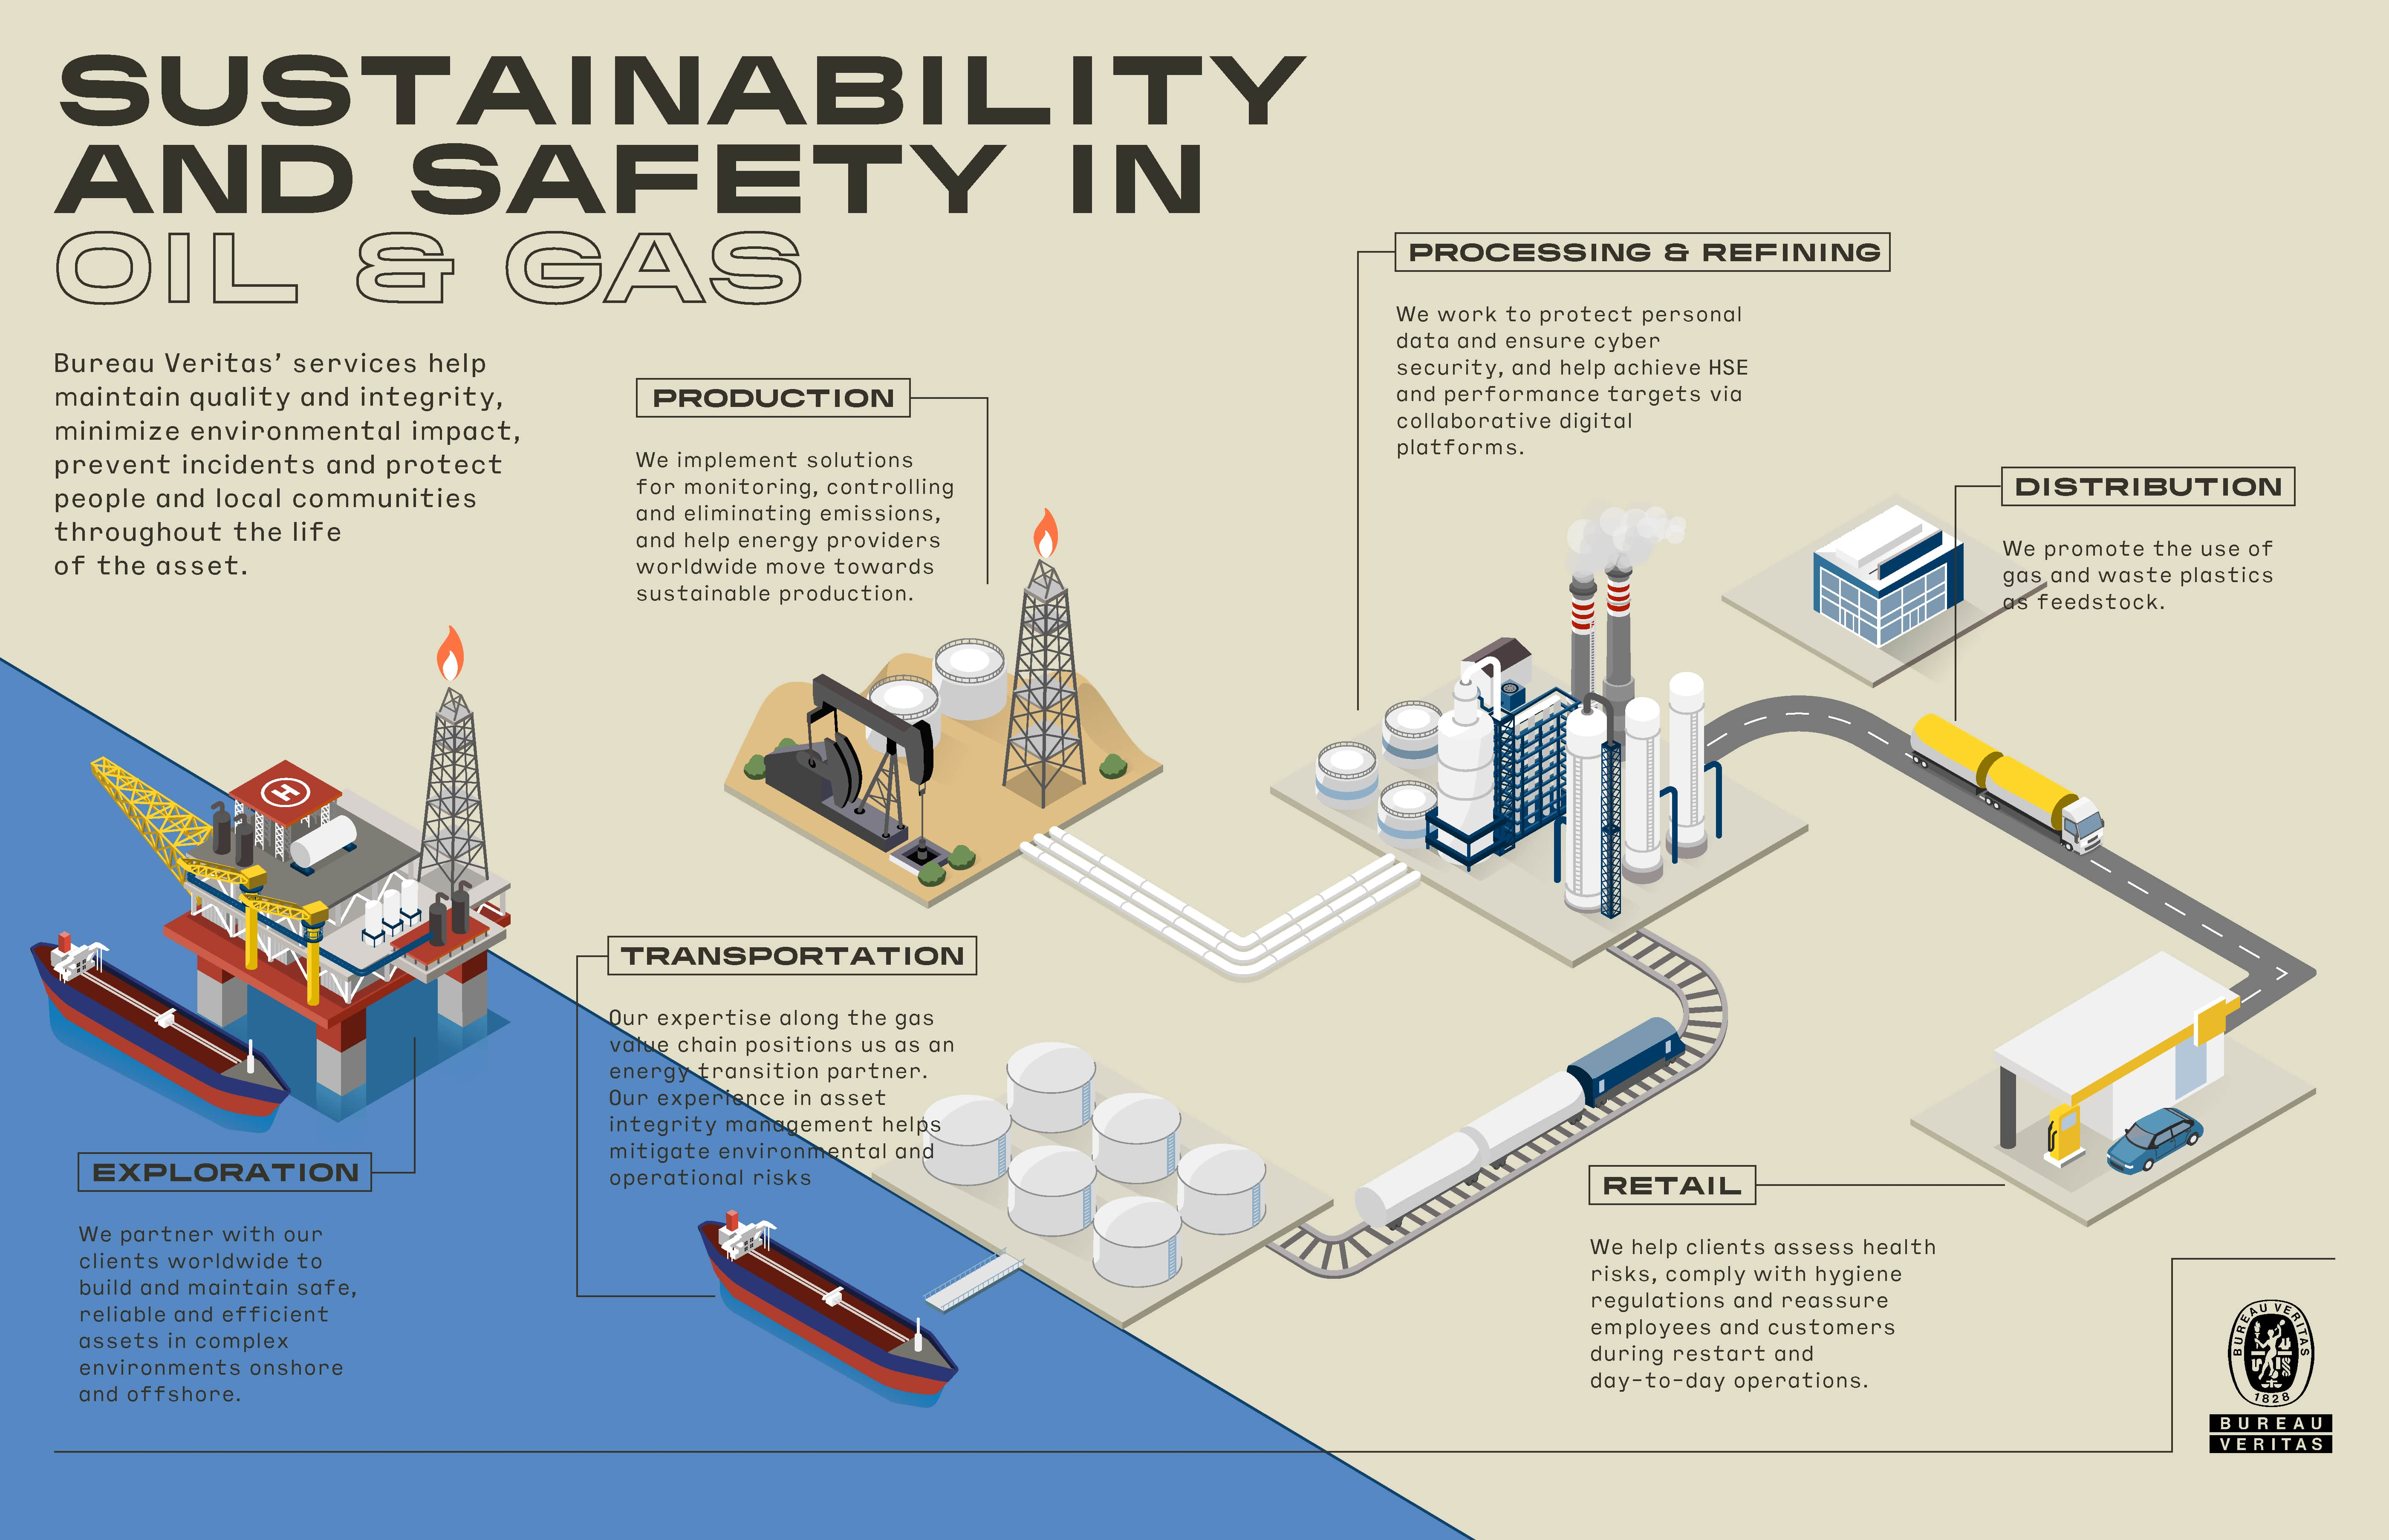 BV-OilGas-01_Sustainability-and-safety